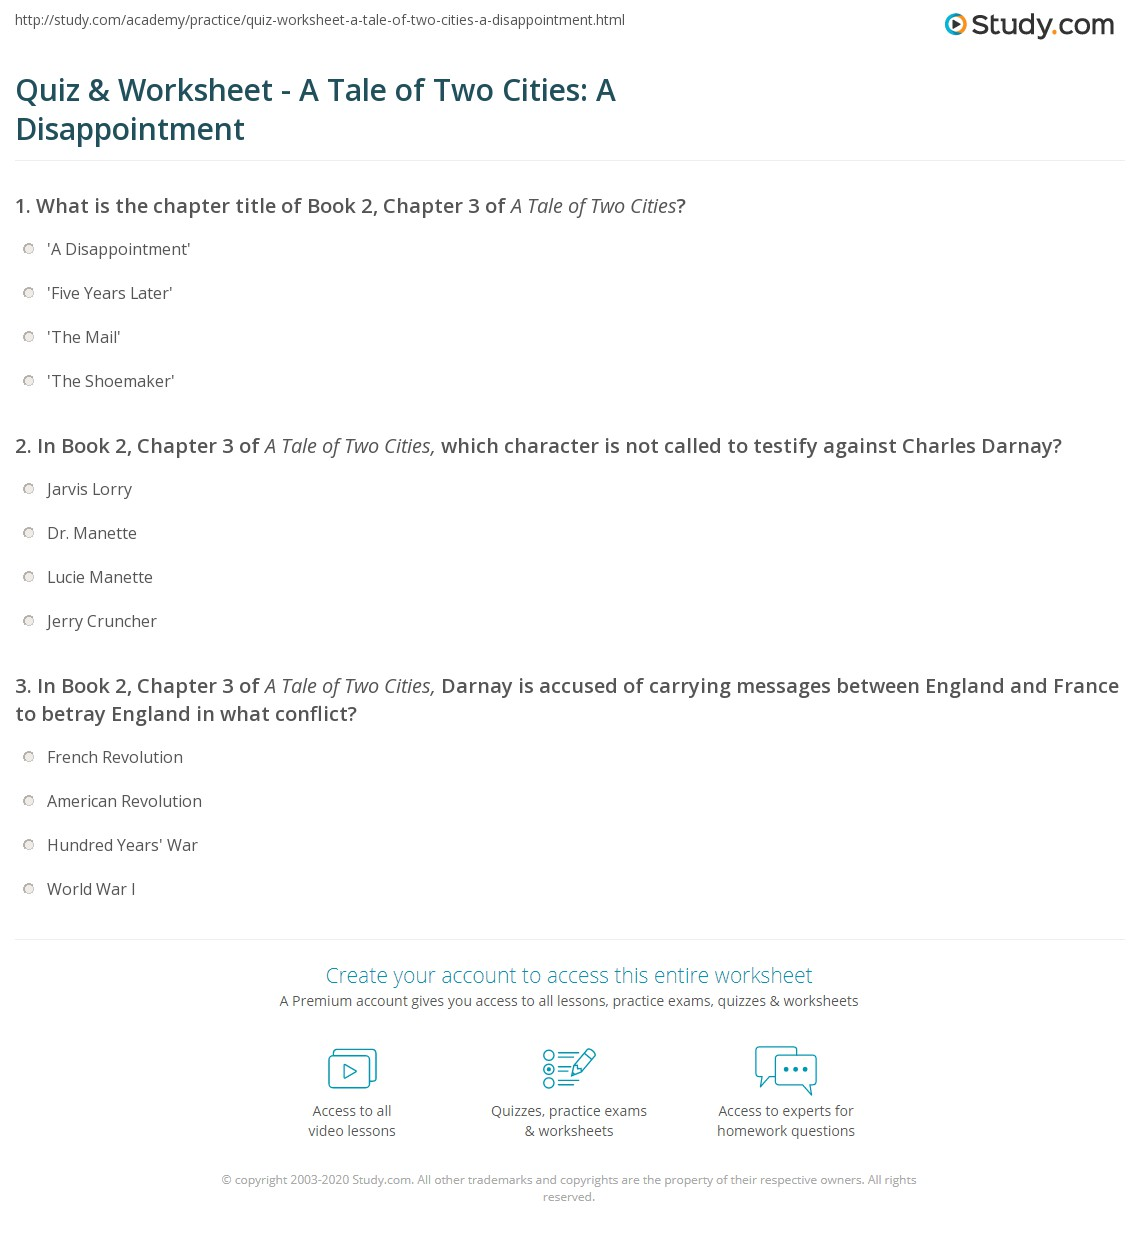 Quiz & Worksheet - A Tale of Two Cities: A Disappointment